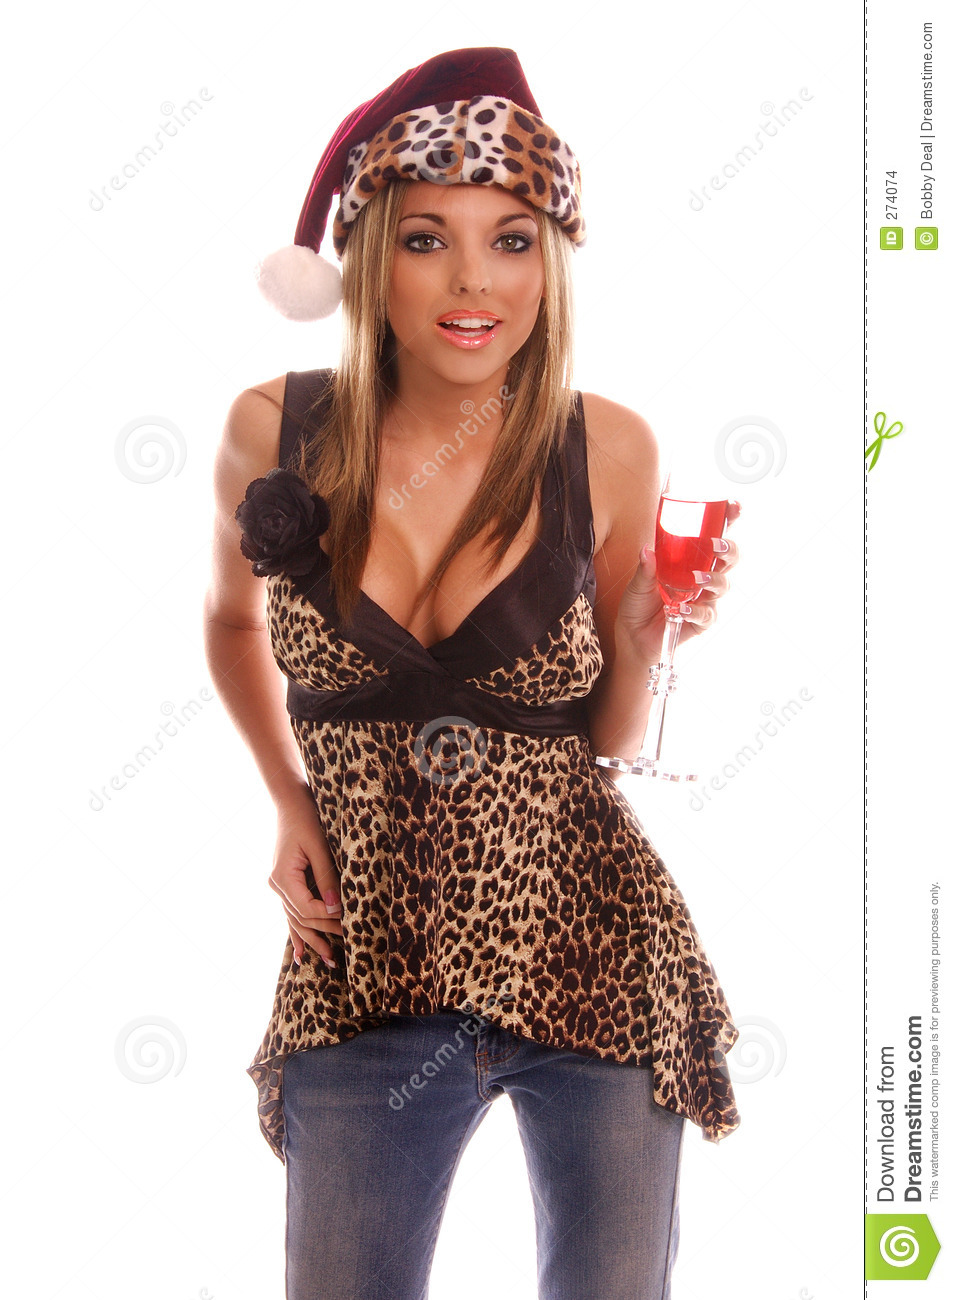 very sexy Christmas party goer in jeans and a leopard print top ...